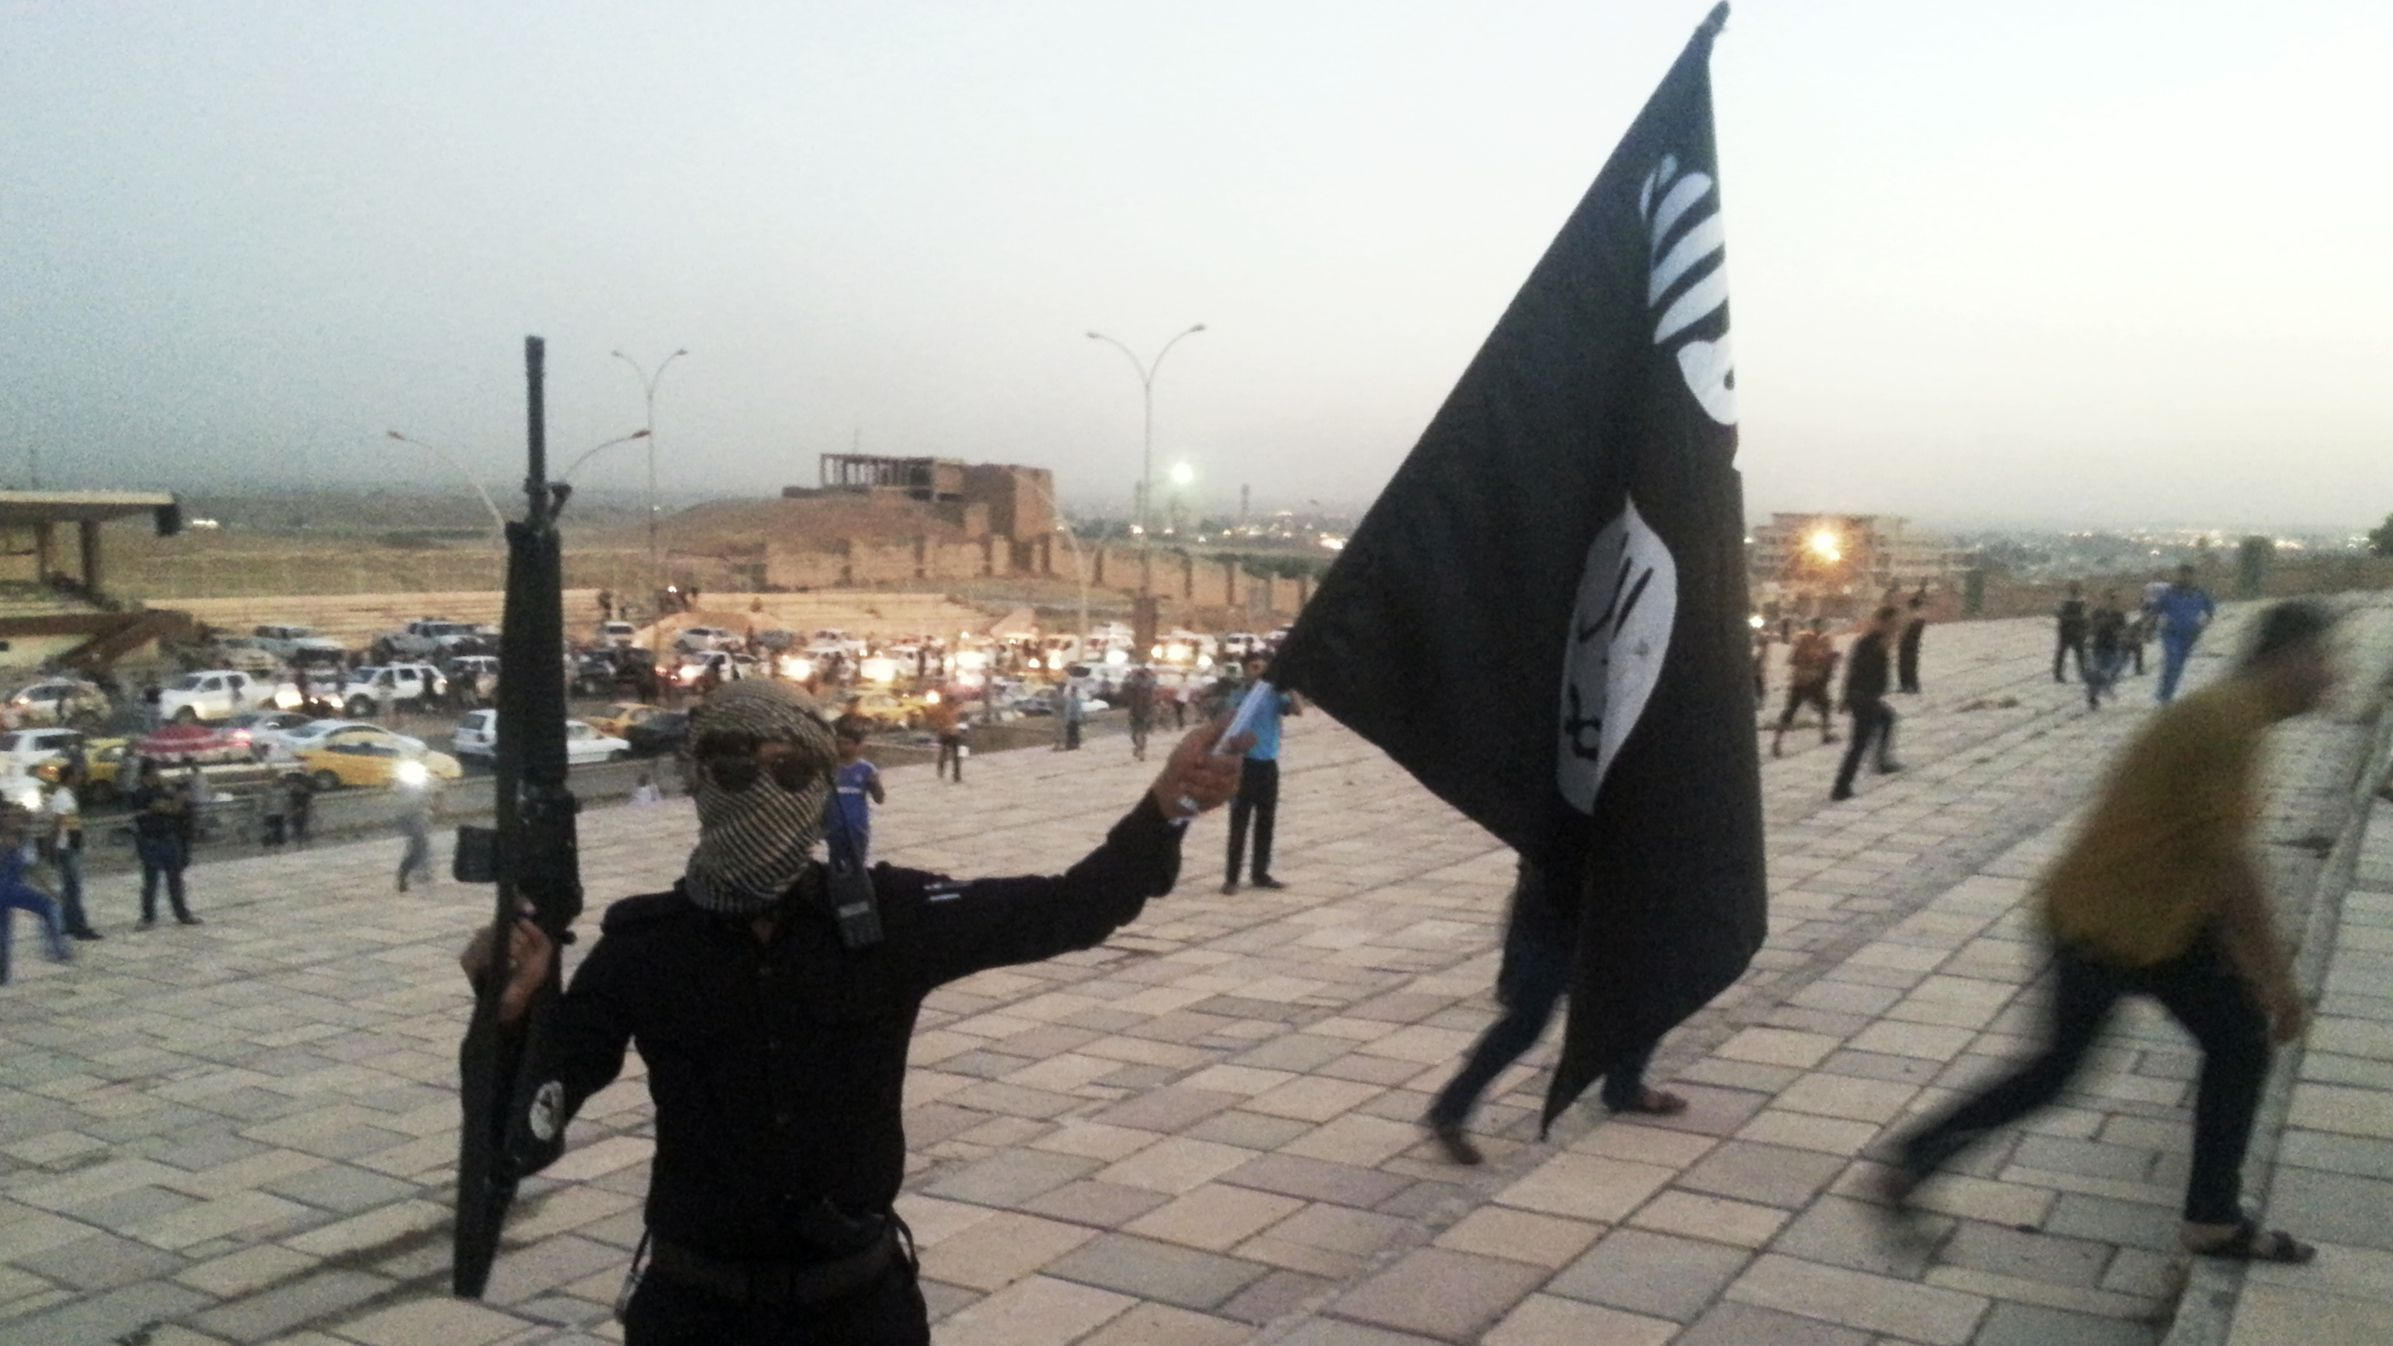 Kickstarter-funded journalists found an ISIL training camp using